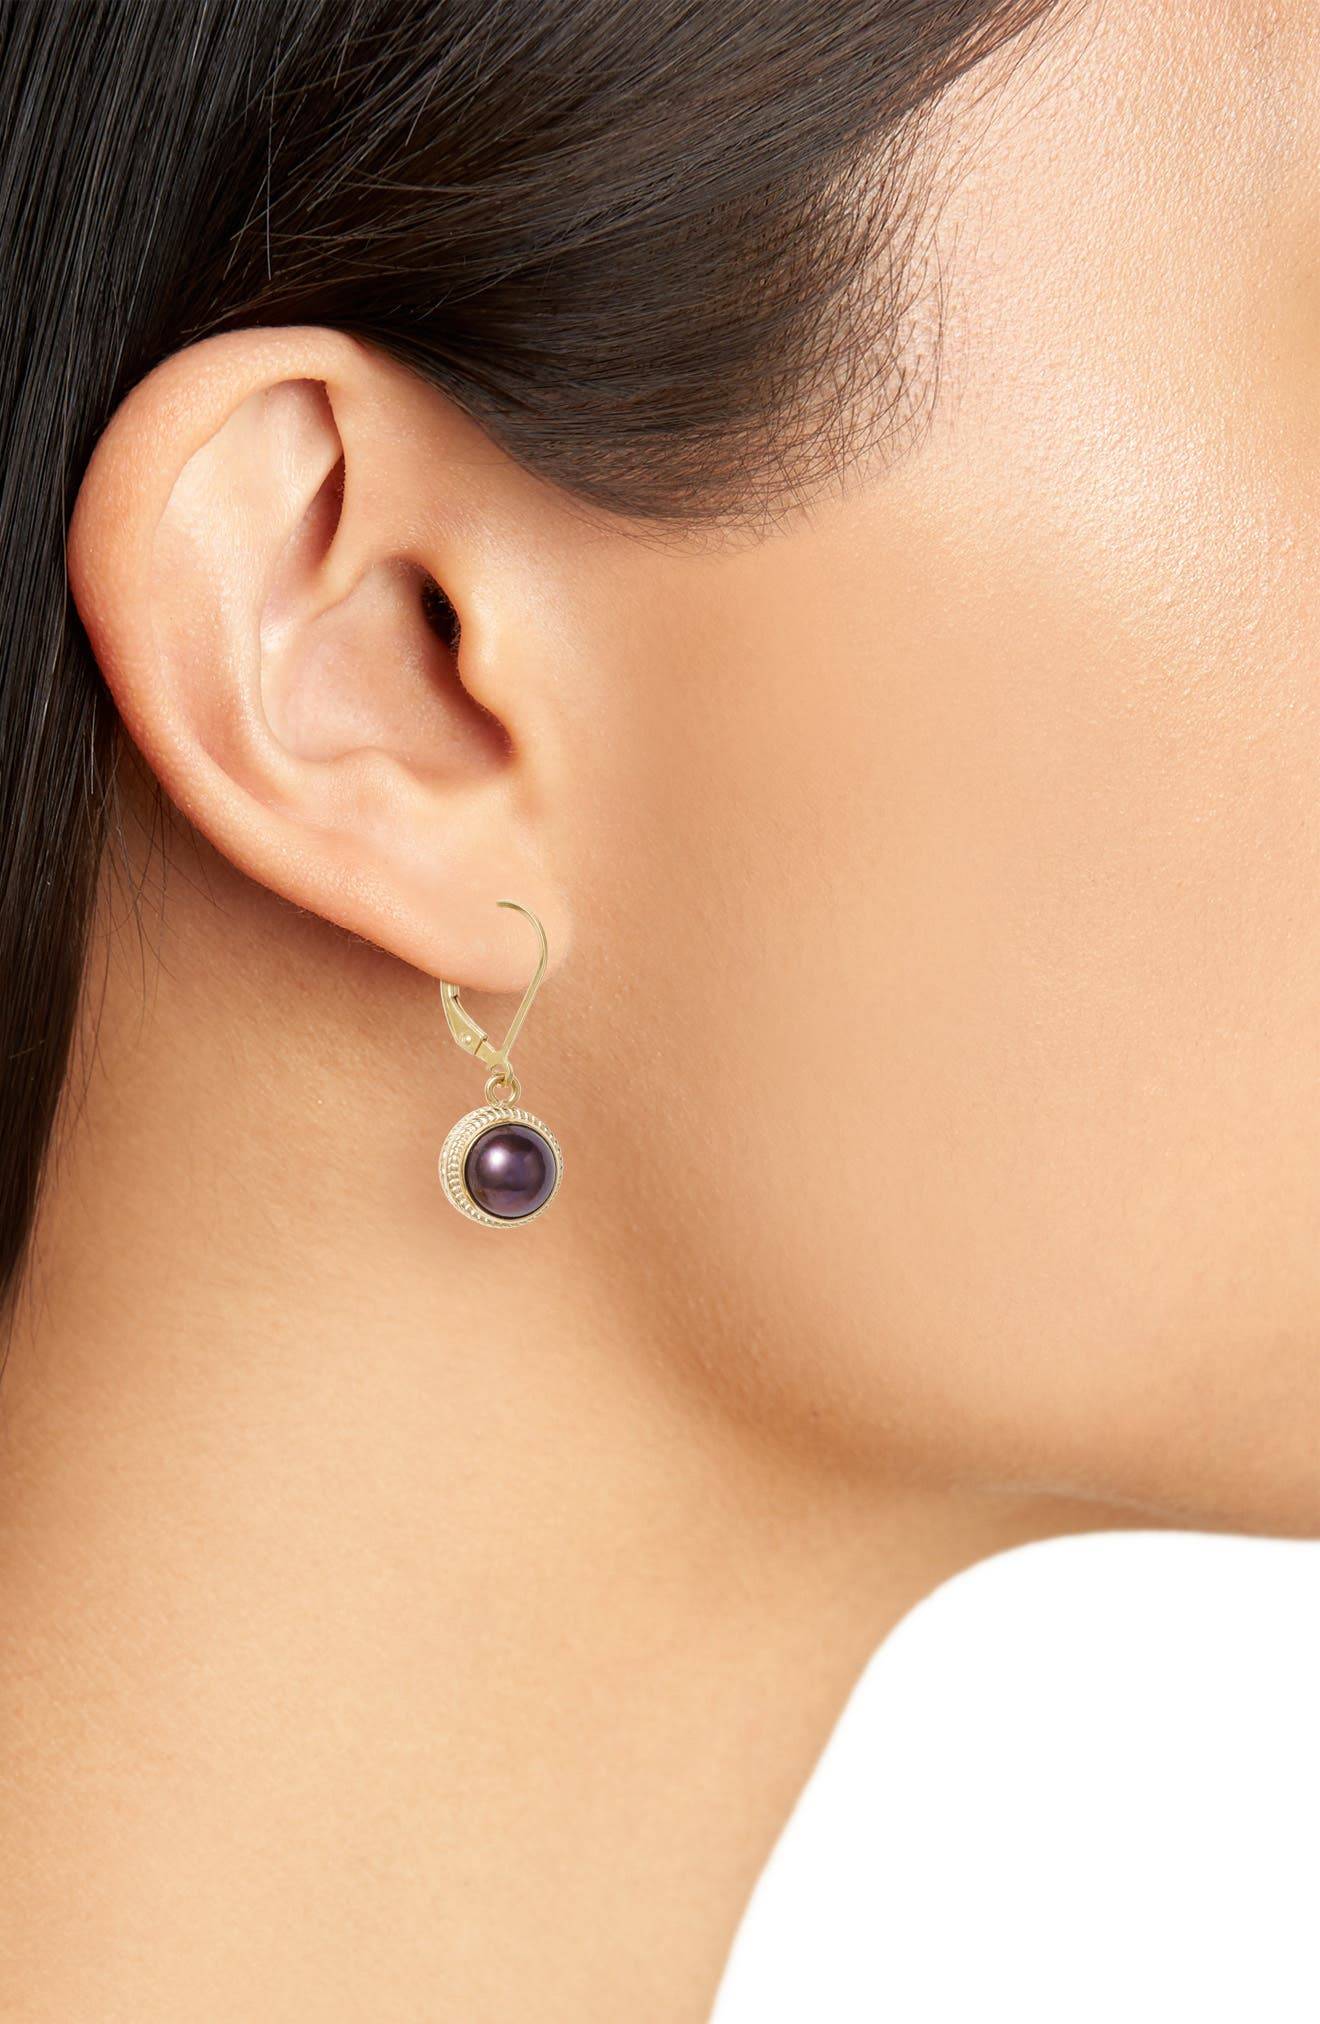 Genuine Blue Pearl Drop Earrings,                             Alternate thumbnail 2, color,                             Gold/ Blue Pearl